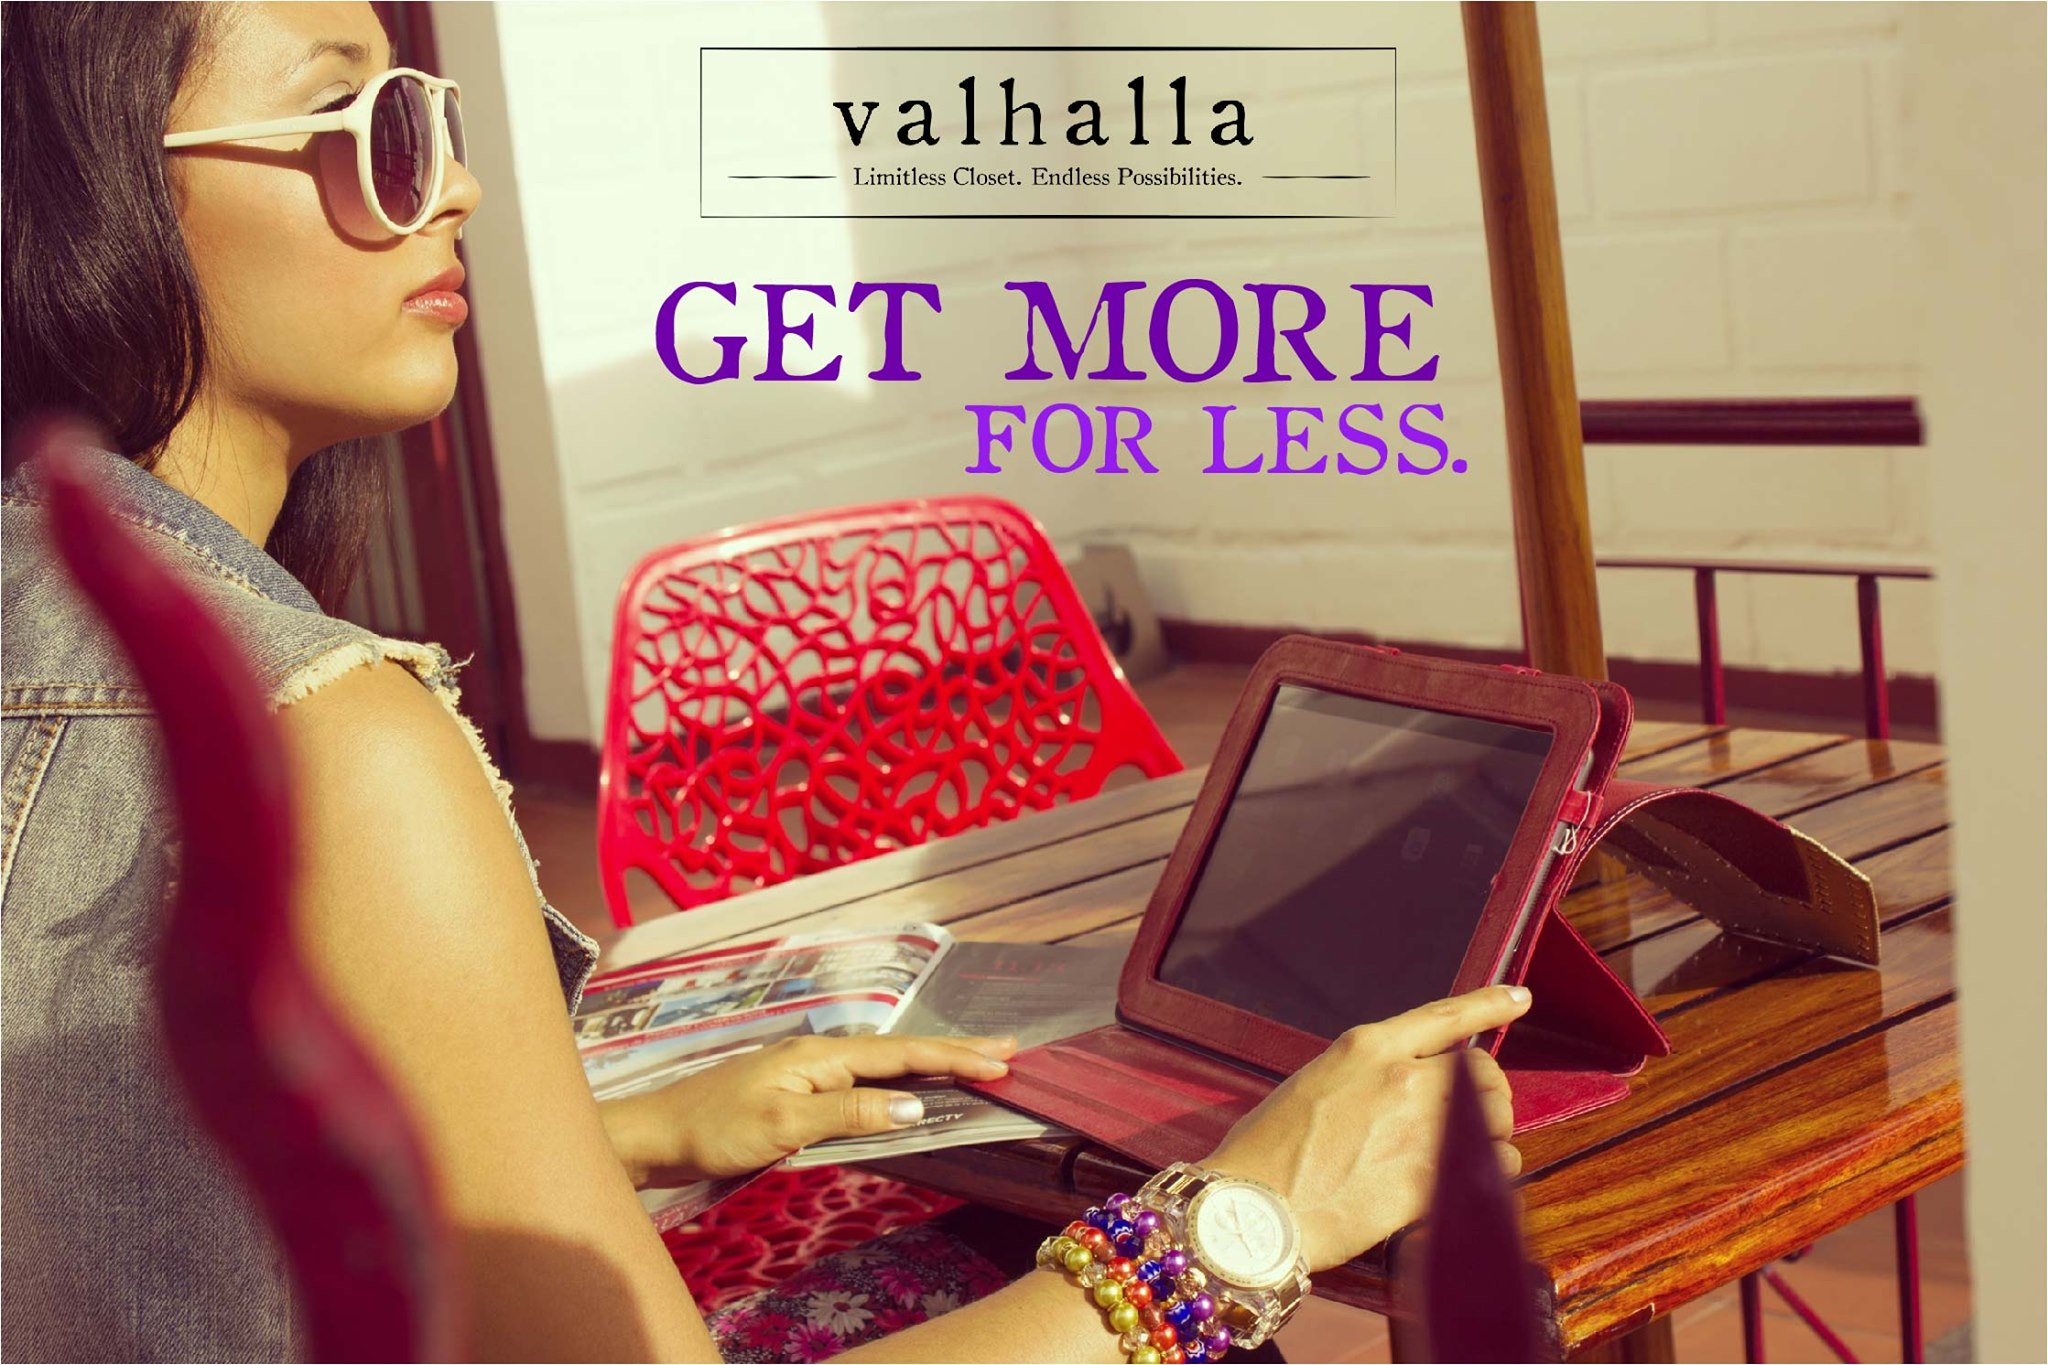 """Valhalla advertisement that features a stylish woman looking at an iPad and reads """"Get More for Less."""""""